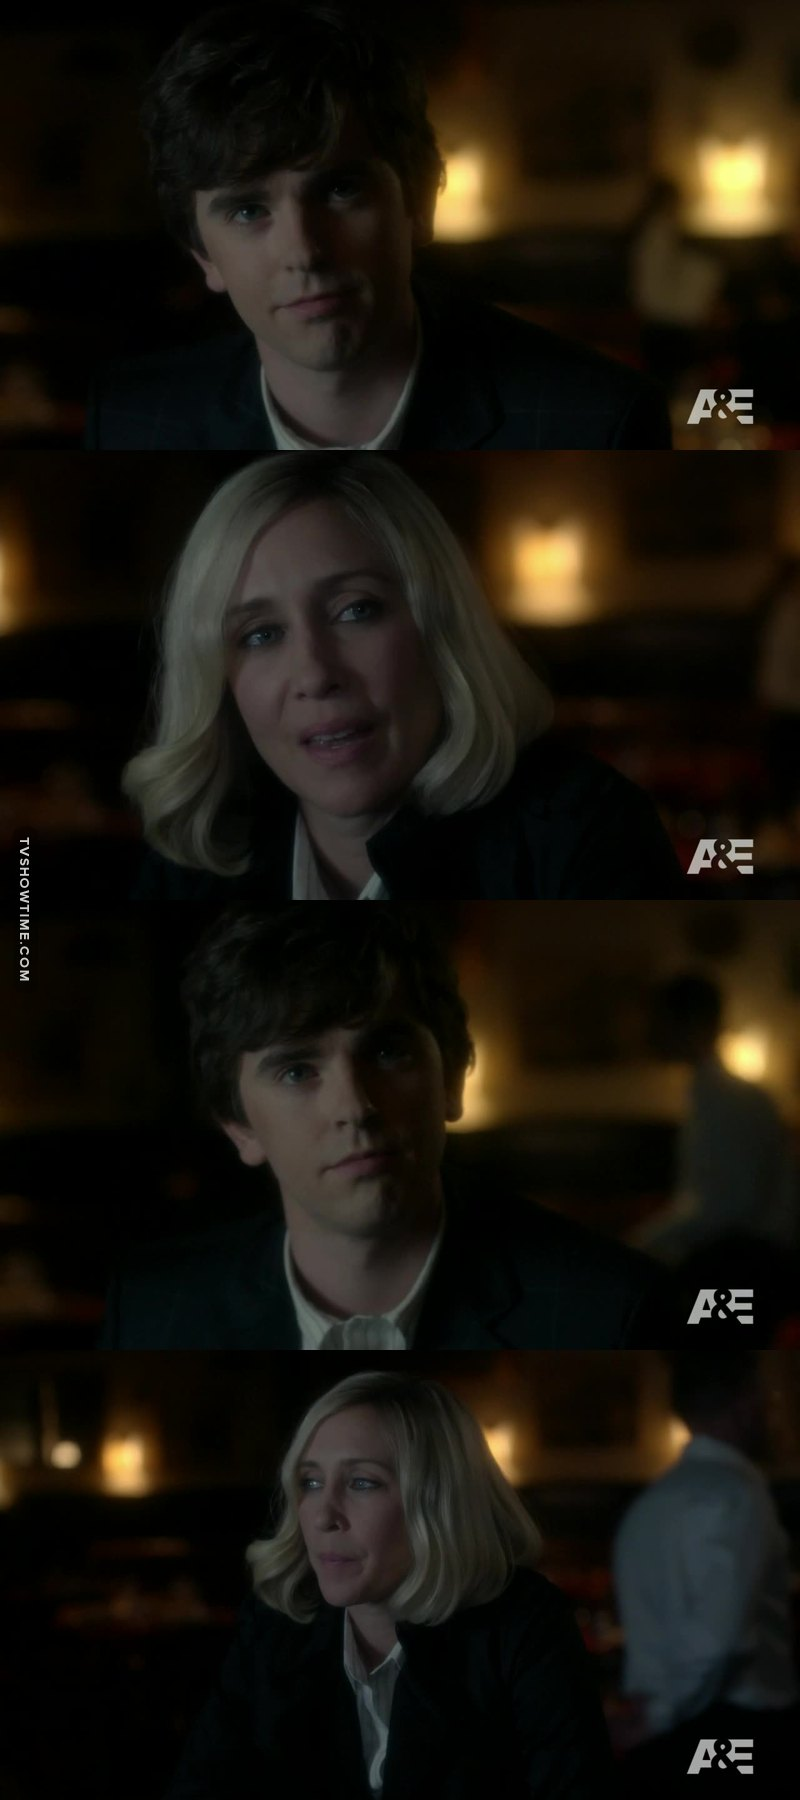 bates motel s05e02 legenda